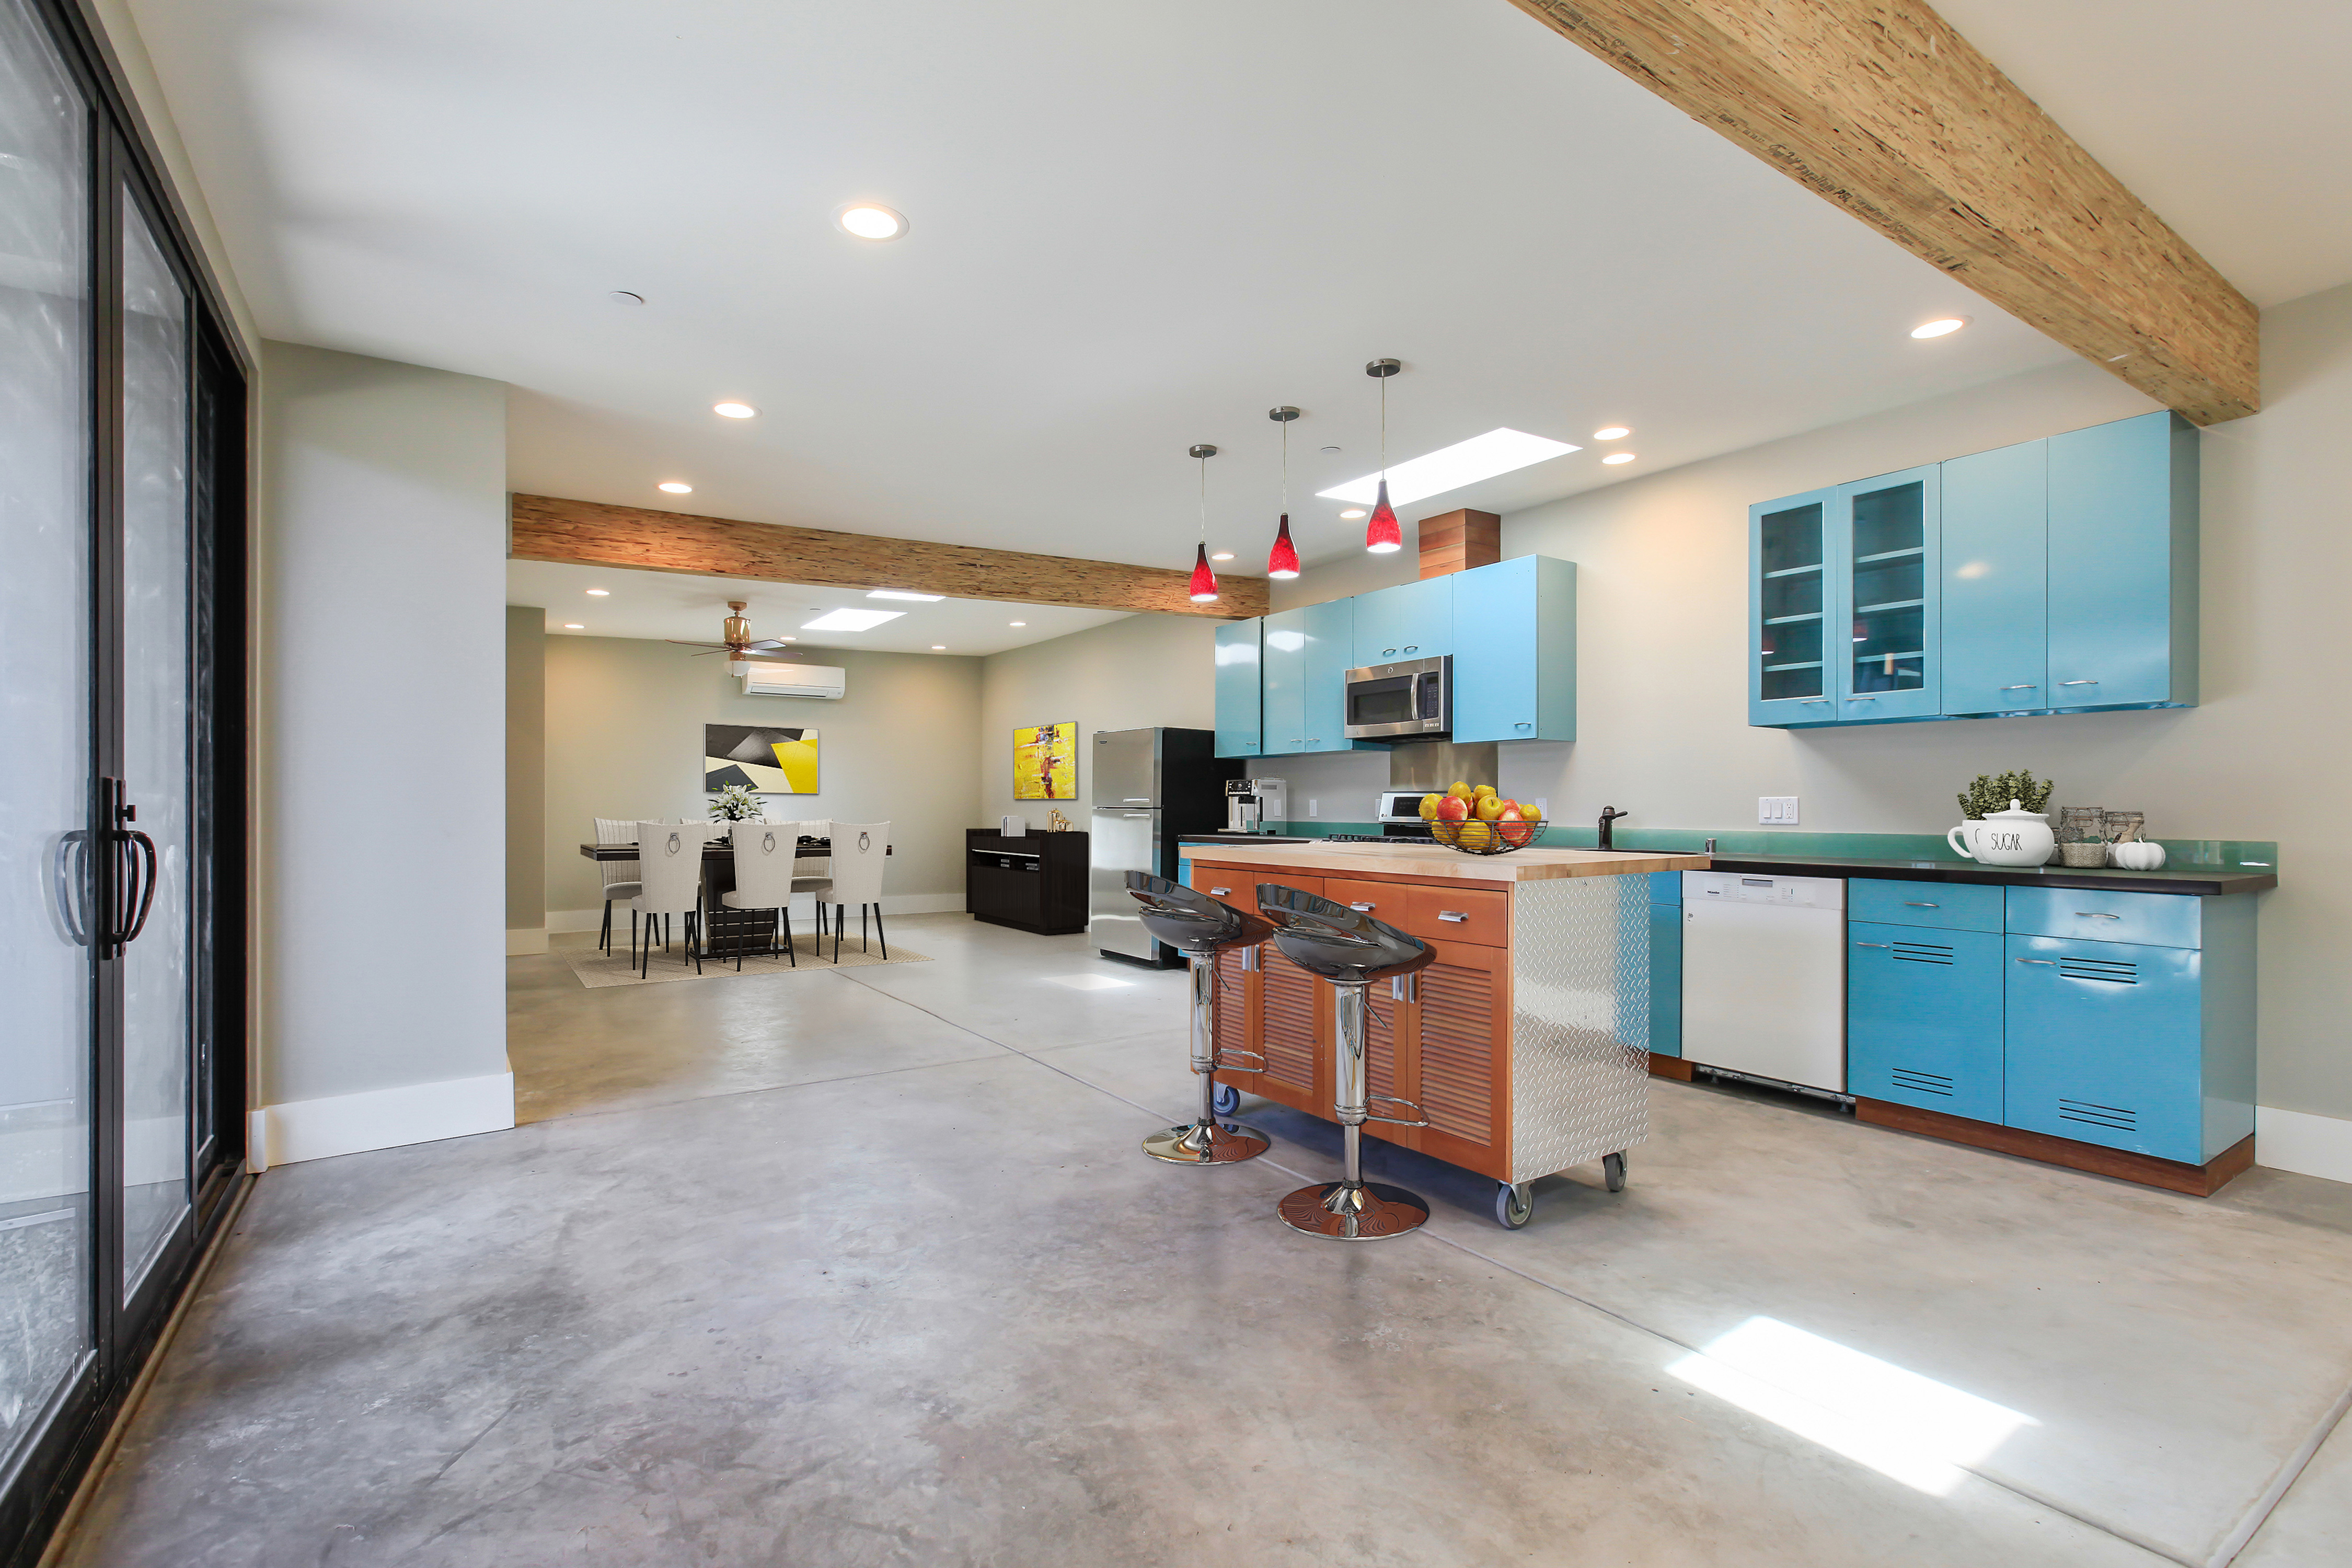 Magnolia Firehouse Kitchen View with Industry Design